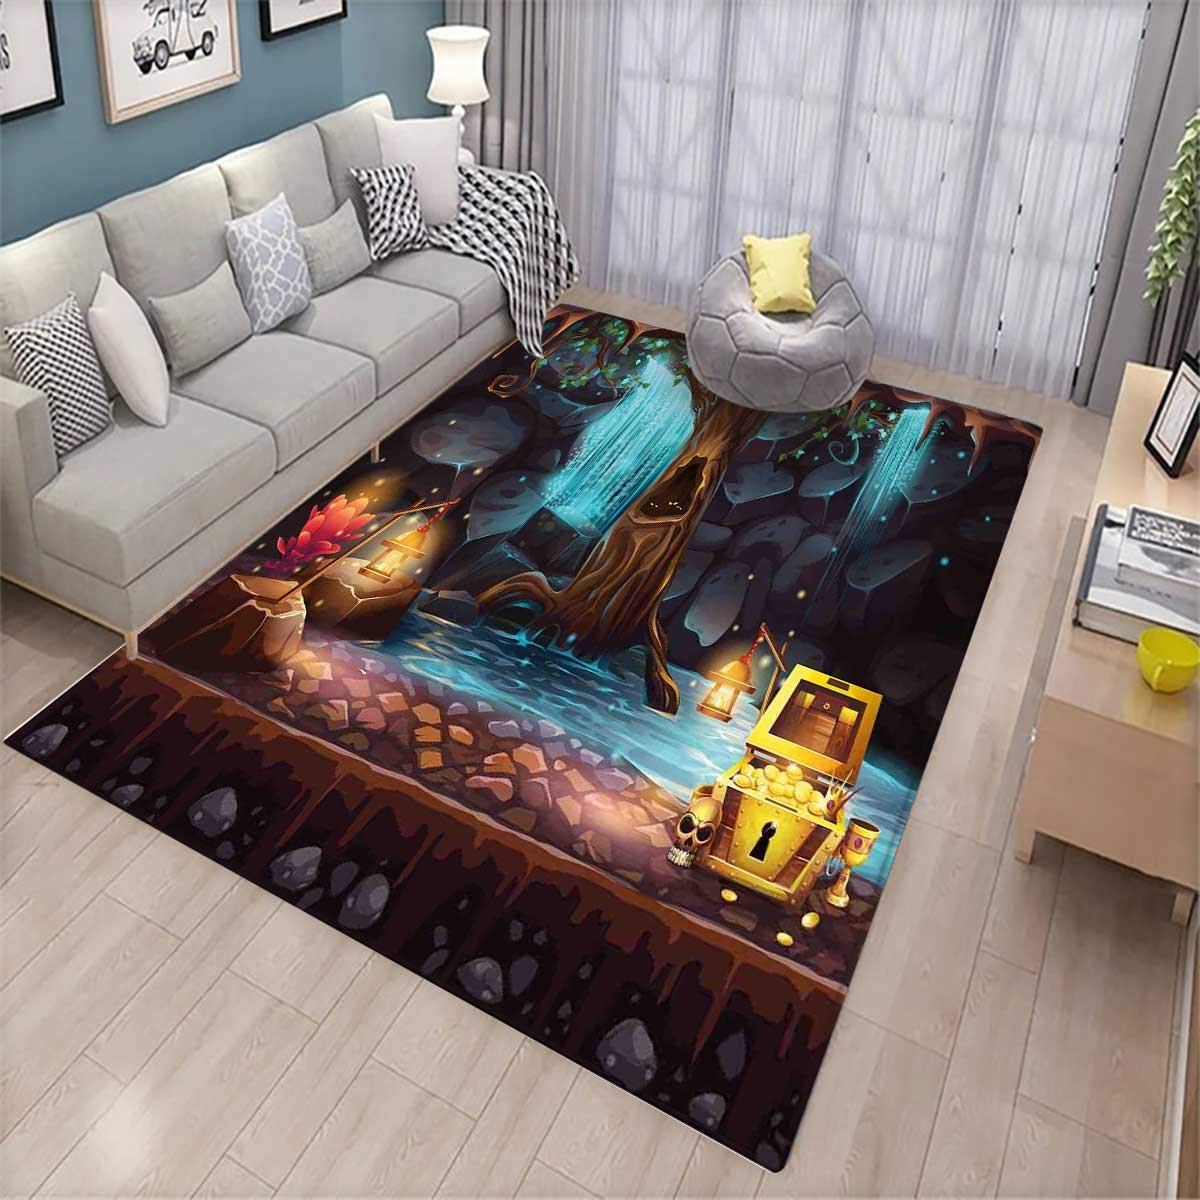 Fantasy Room Home Bedroom Carpet Floor Mat Cartoon Style Cave Landscape with a Big Tree Treasure Chest Lamps and Waterfall Floor Mat Pattern Multicolor